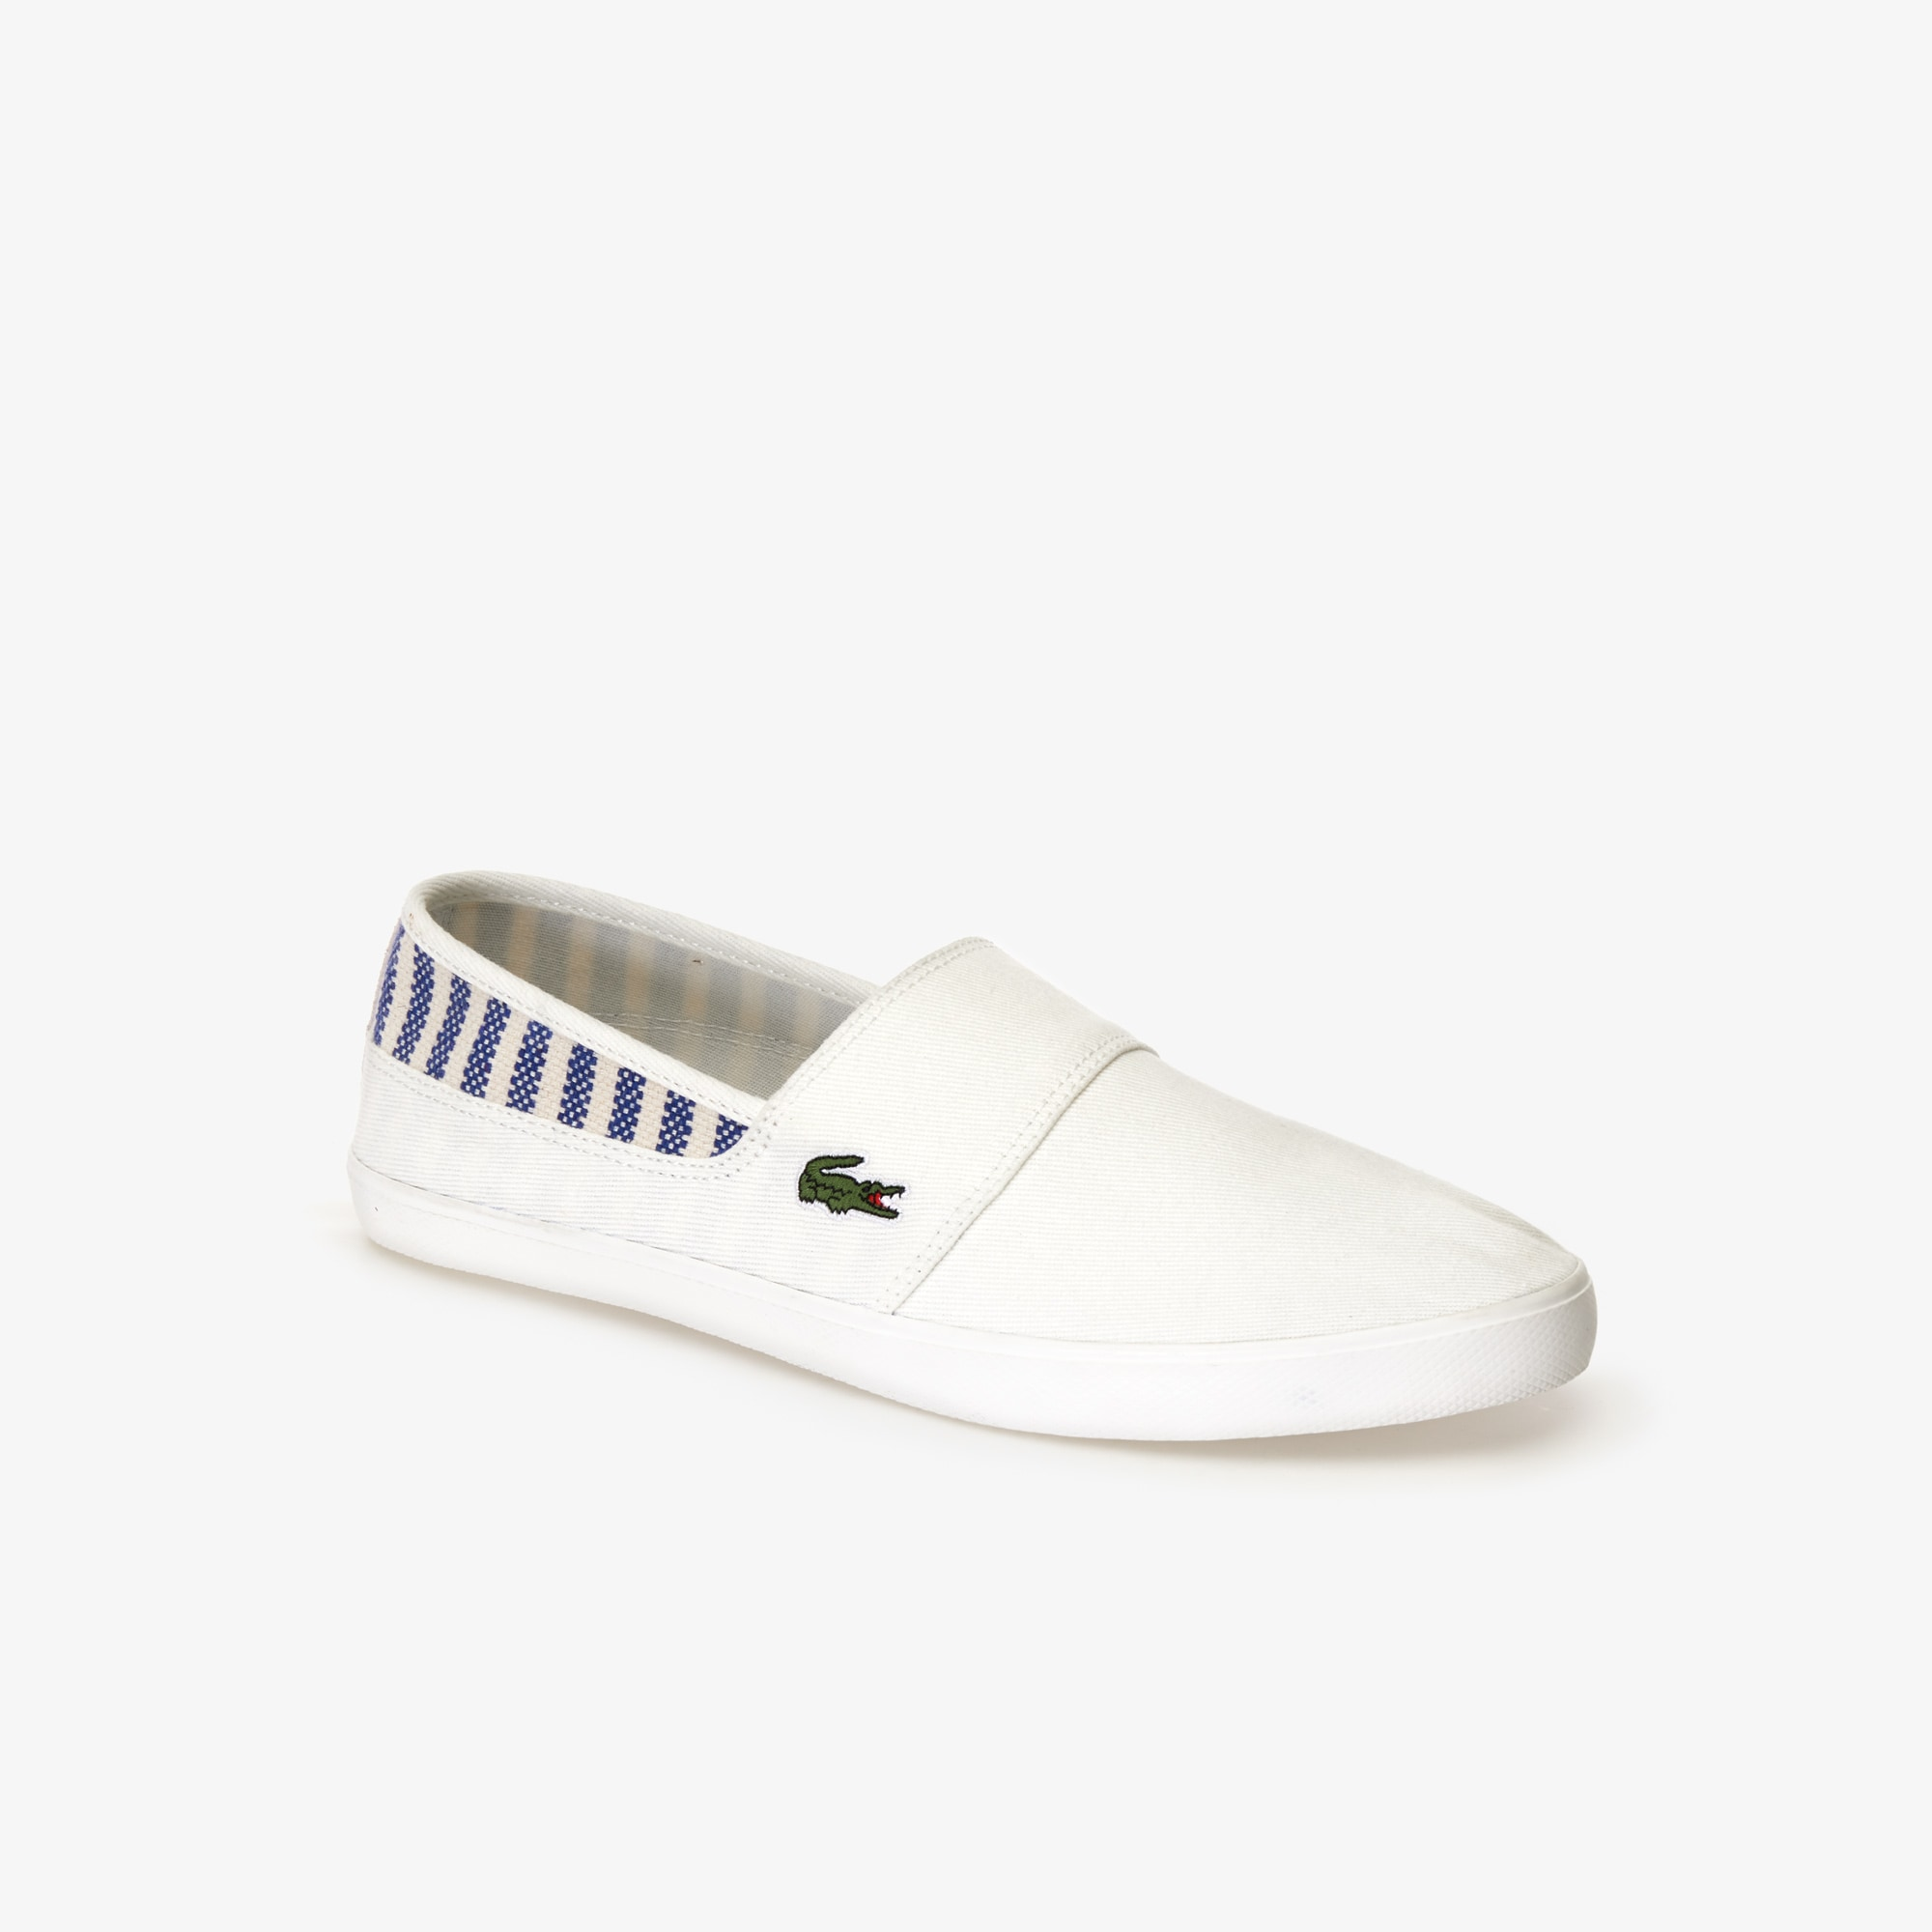 Lacoste Lingerie Men's Marice Canvas Slip-ons with Green Croc